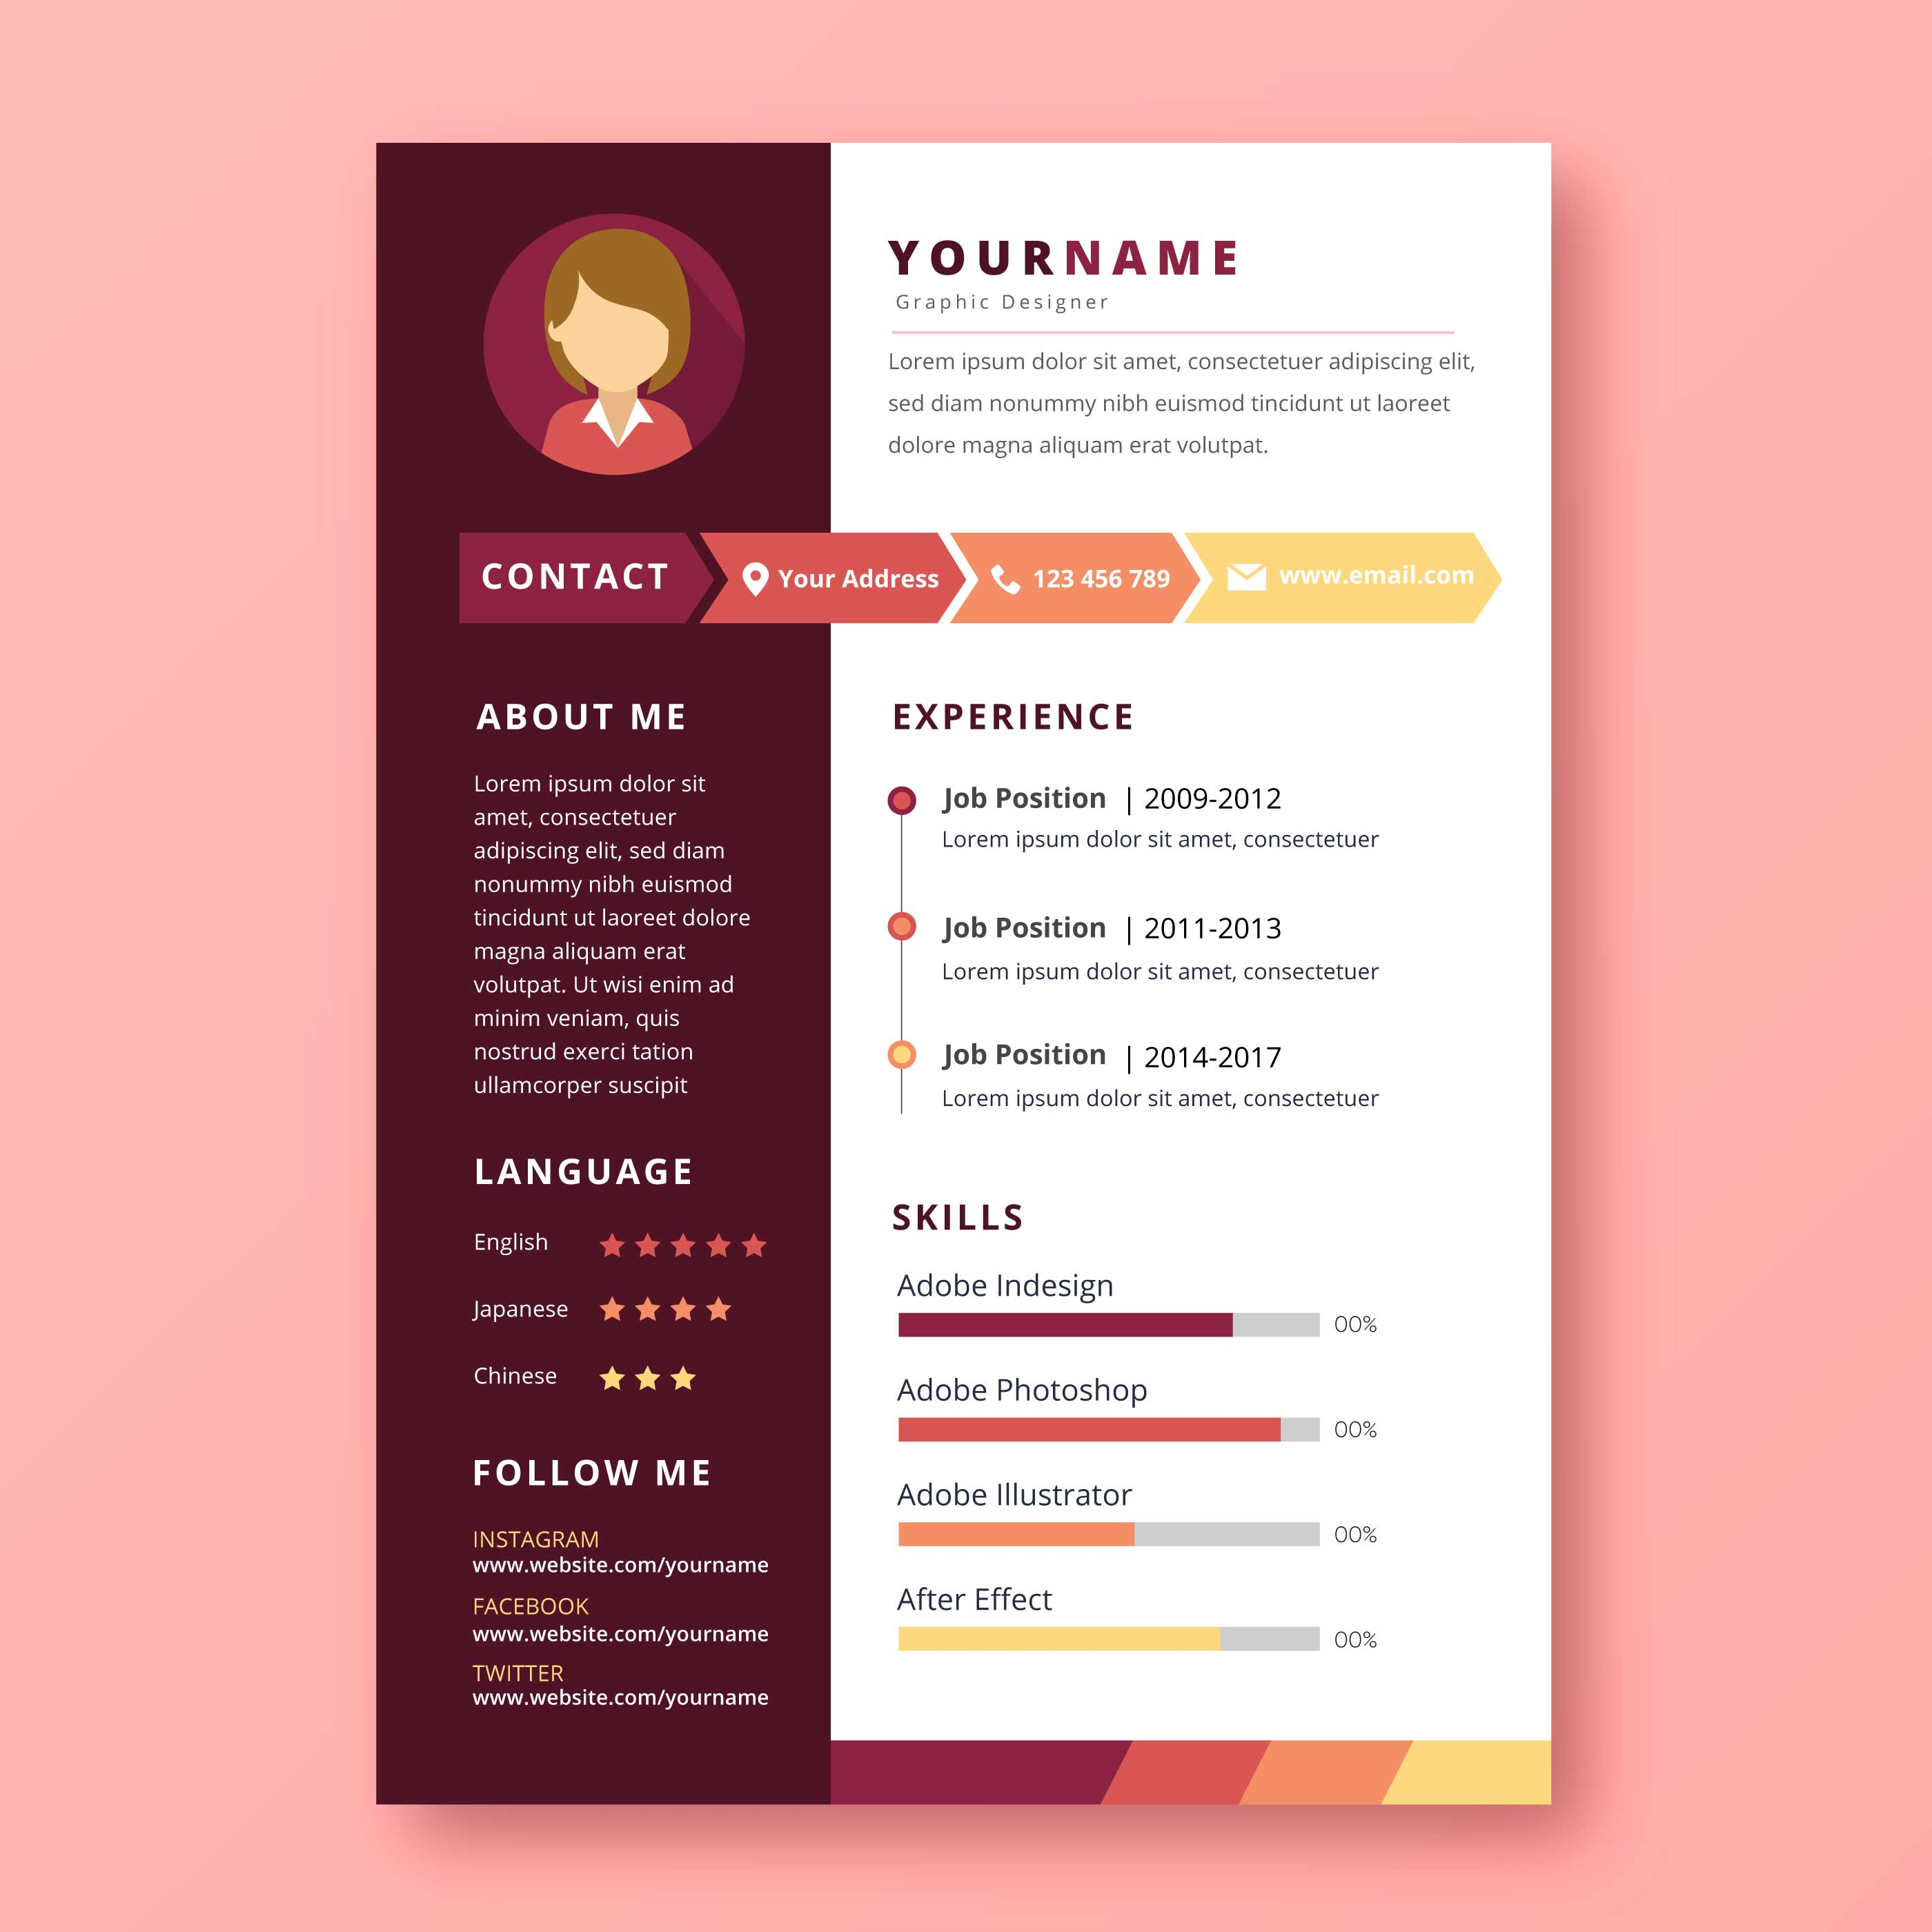 cv english graphic designer